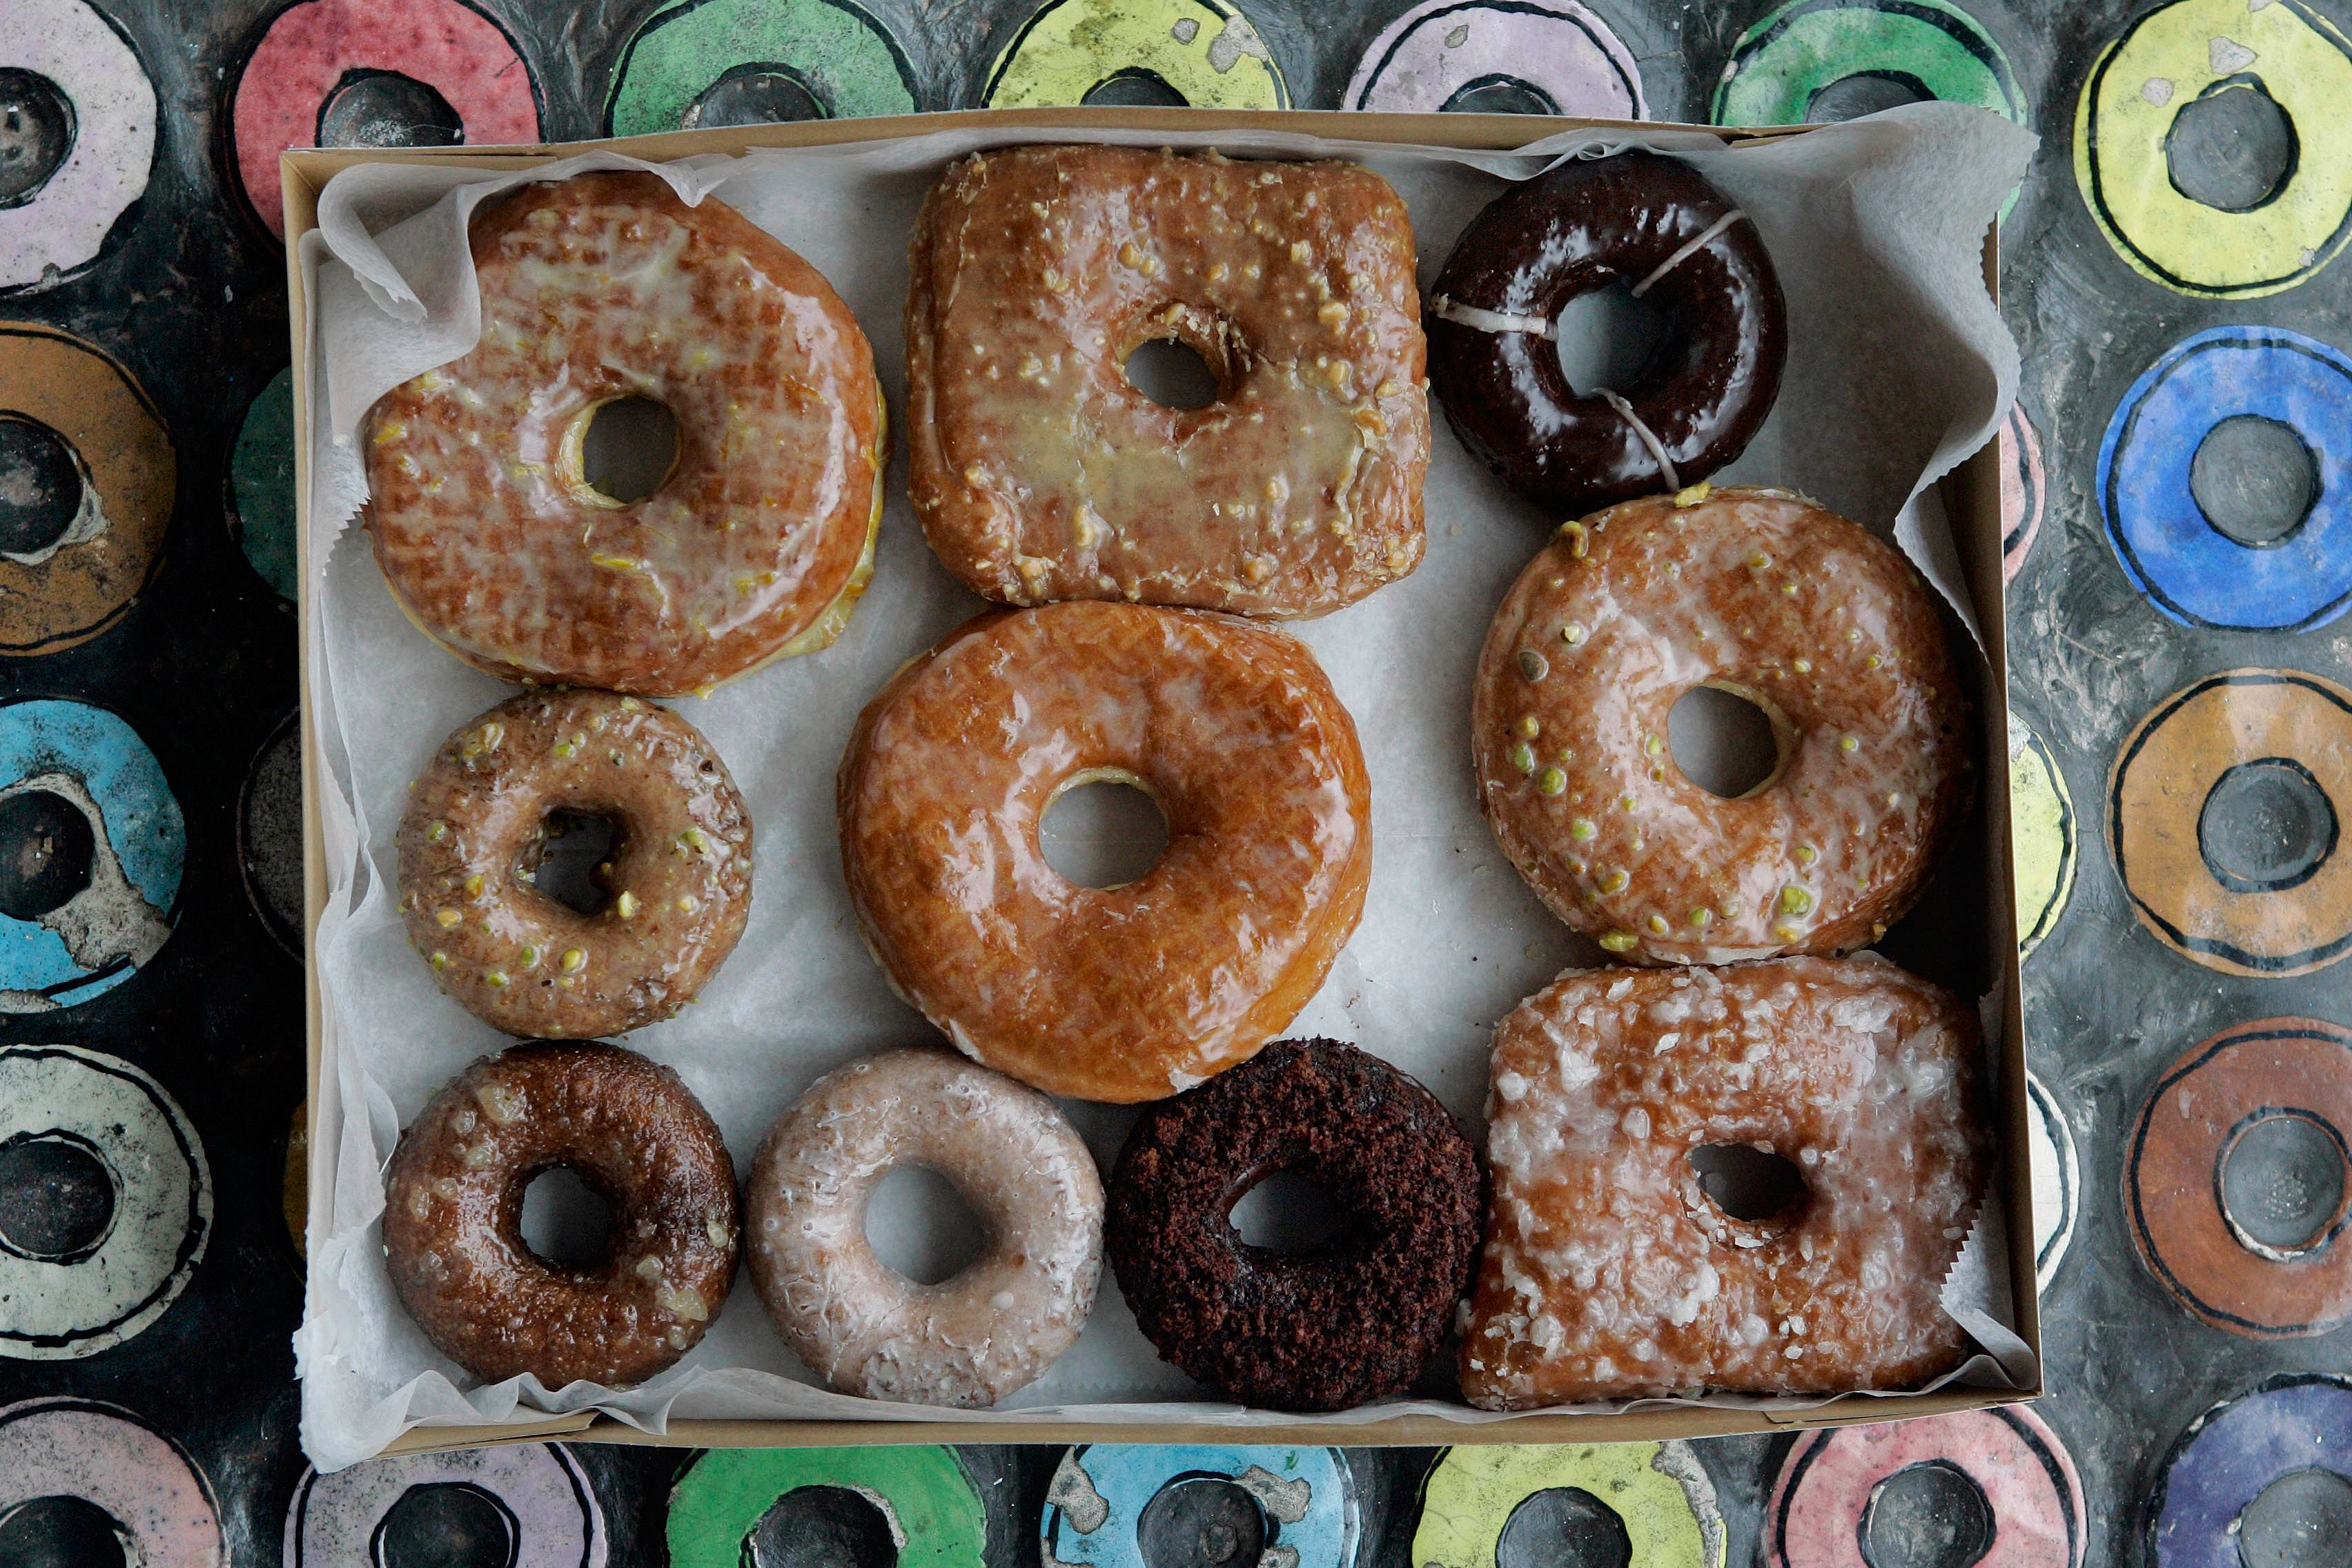 TransFatsDoughnuts-2 In this Jan. 12, 2007 photo, a box with a variety of doughnuts from Doughnut Plant sit in the front window of the shop on New York's Lower East Side. Doughnut Plant owner Mark Isreal has been making trans-fat-free, all-natural doughnuts for a dozen years.